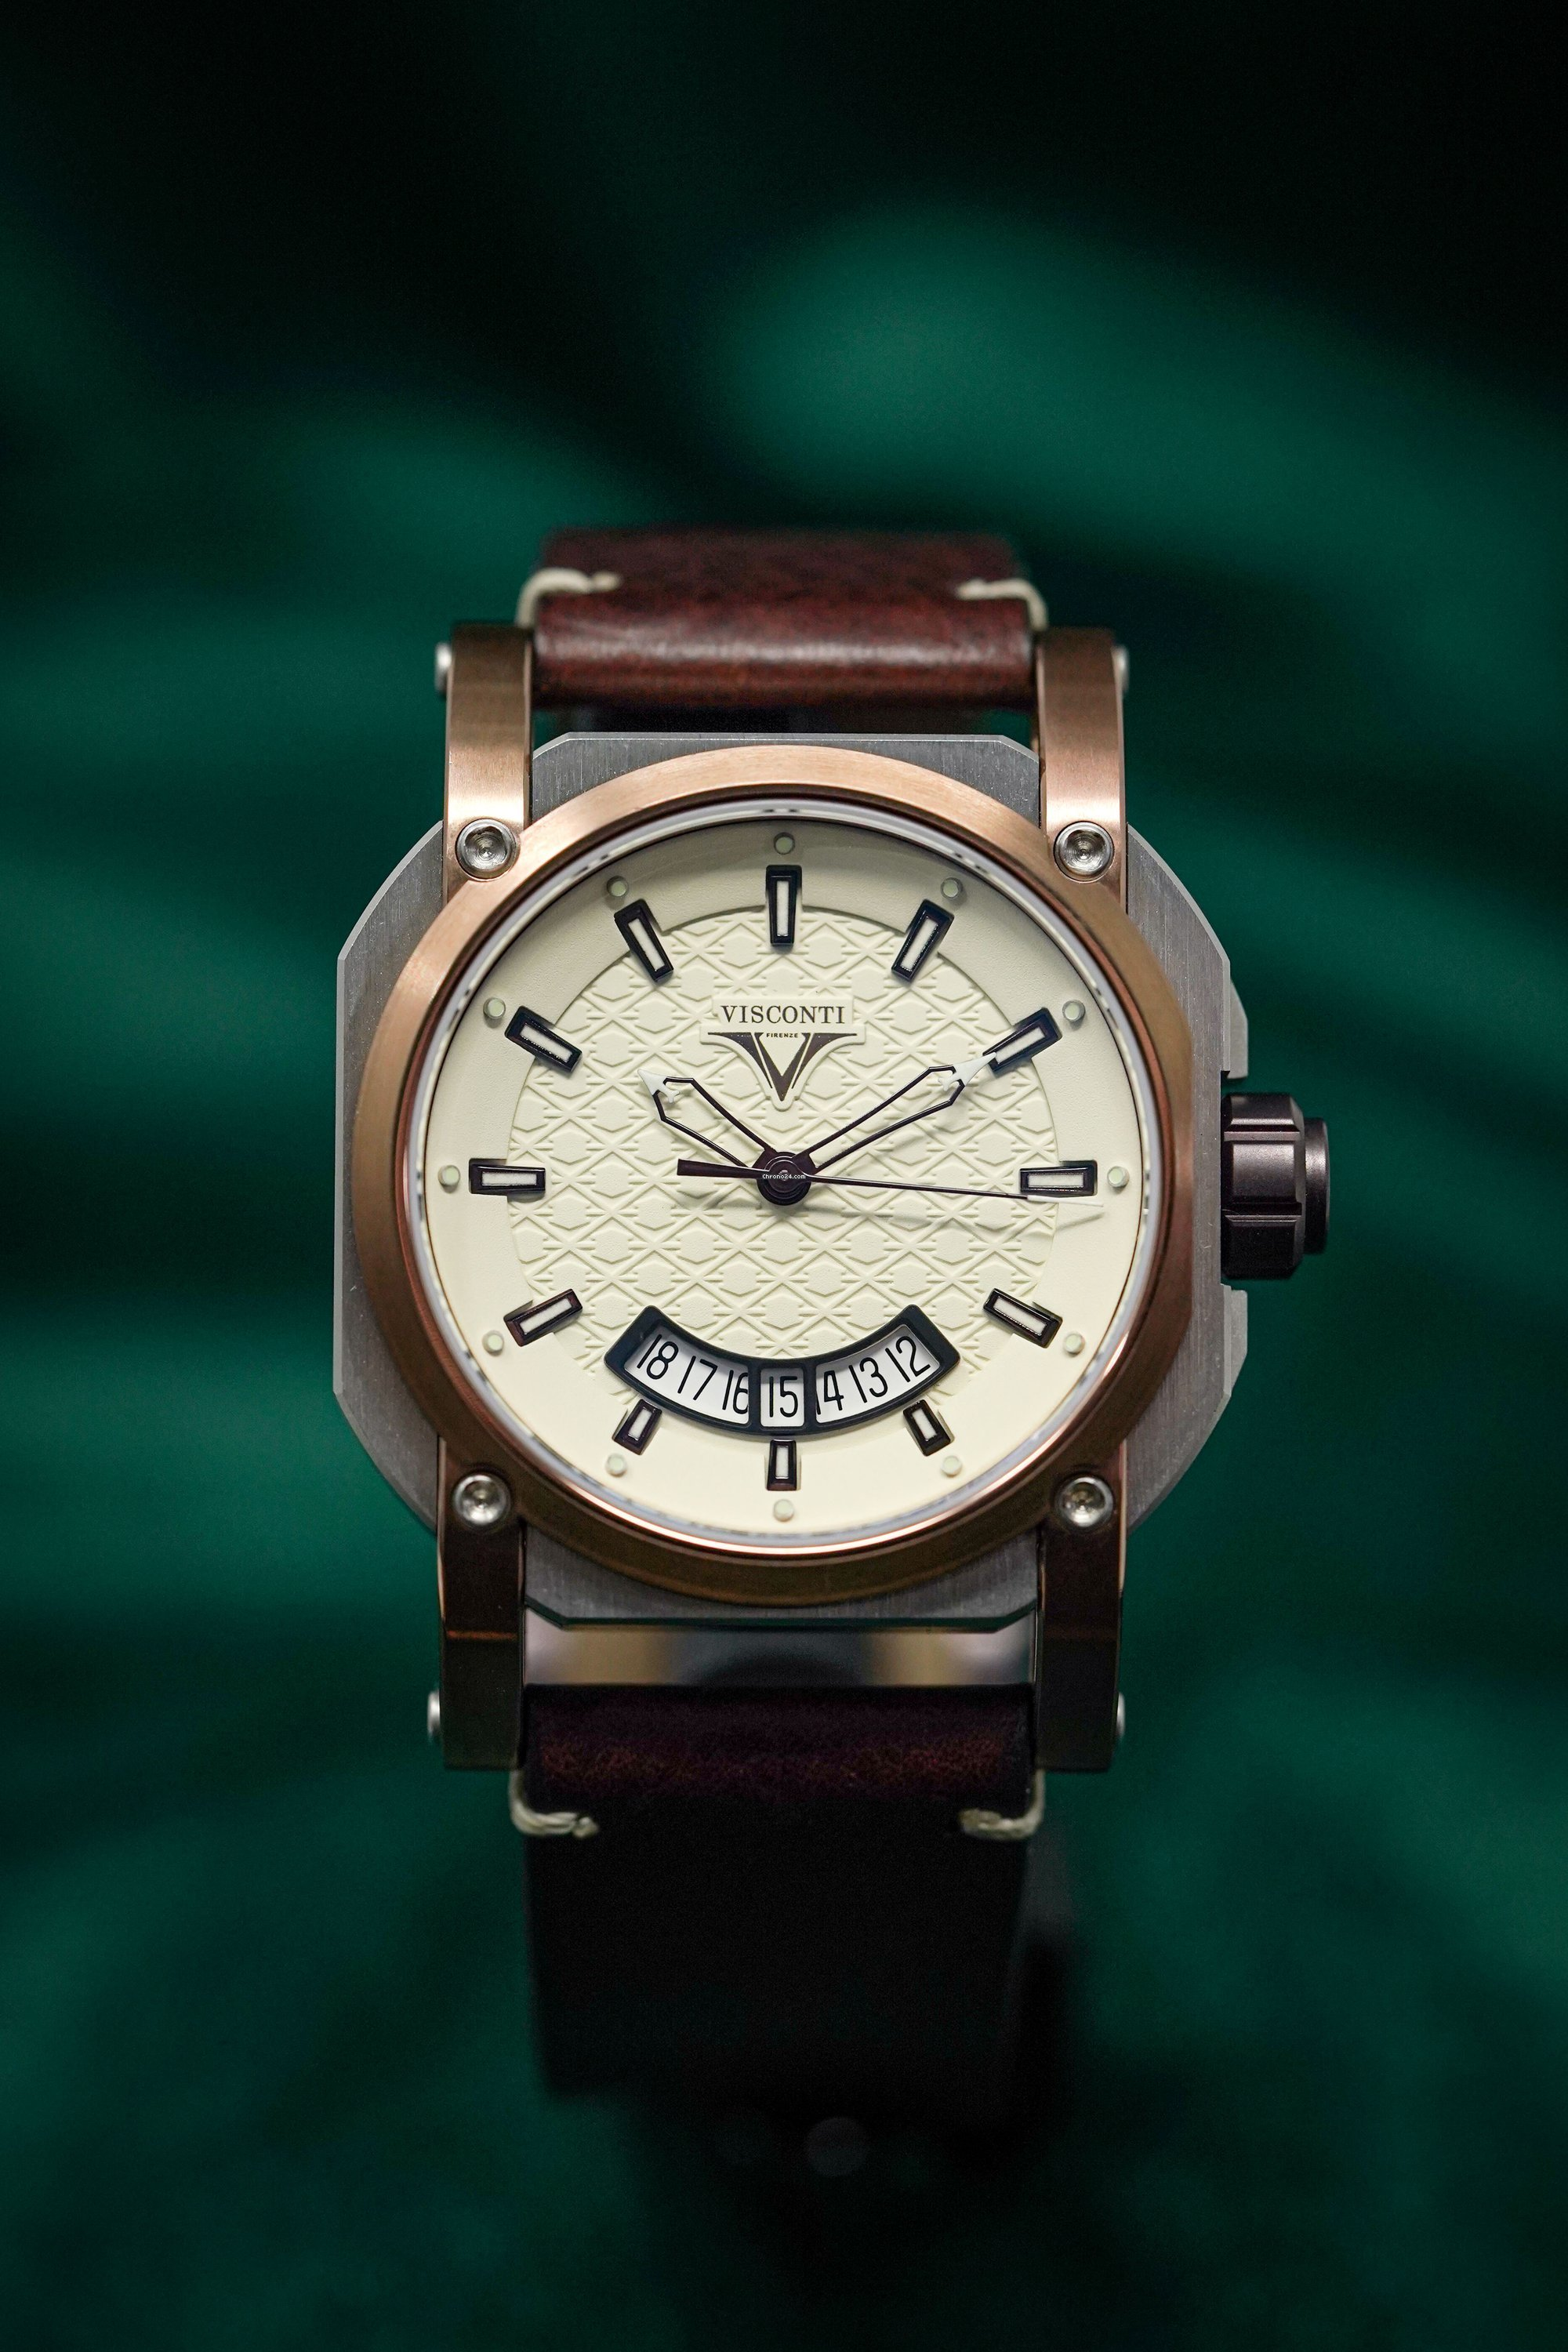 Visconti Men's Automatic Watch Up to Date Image 12 Clip